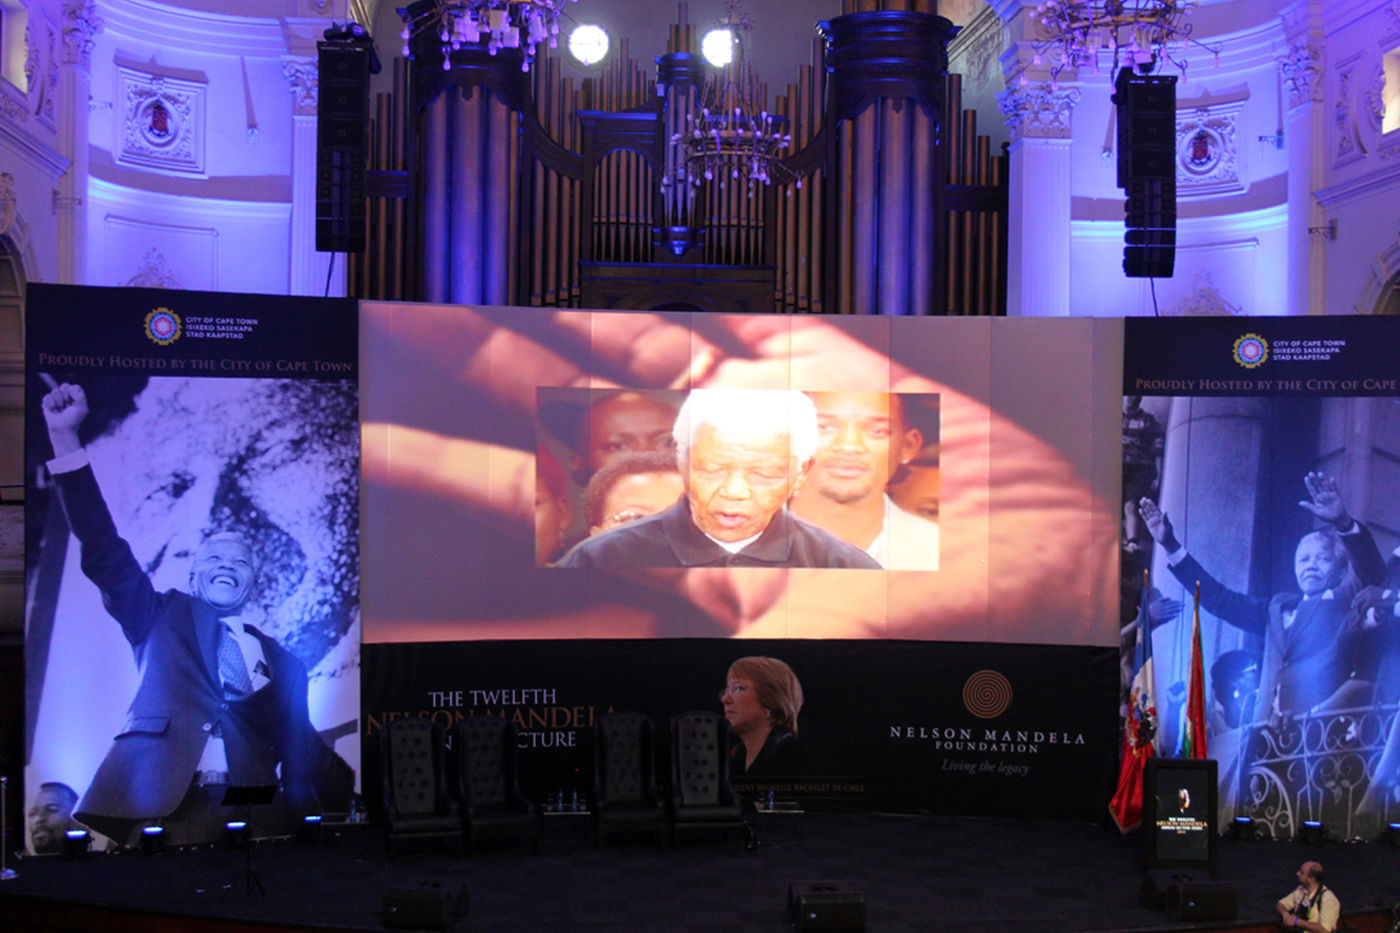 Nelson  Mandela  Annual  Lecture 2014   Stage With  Mandela Video 1